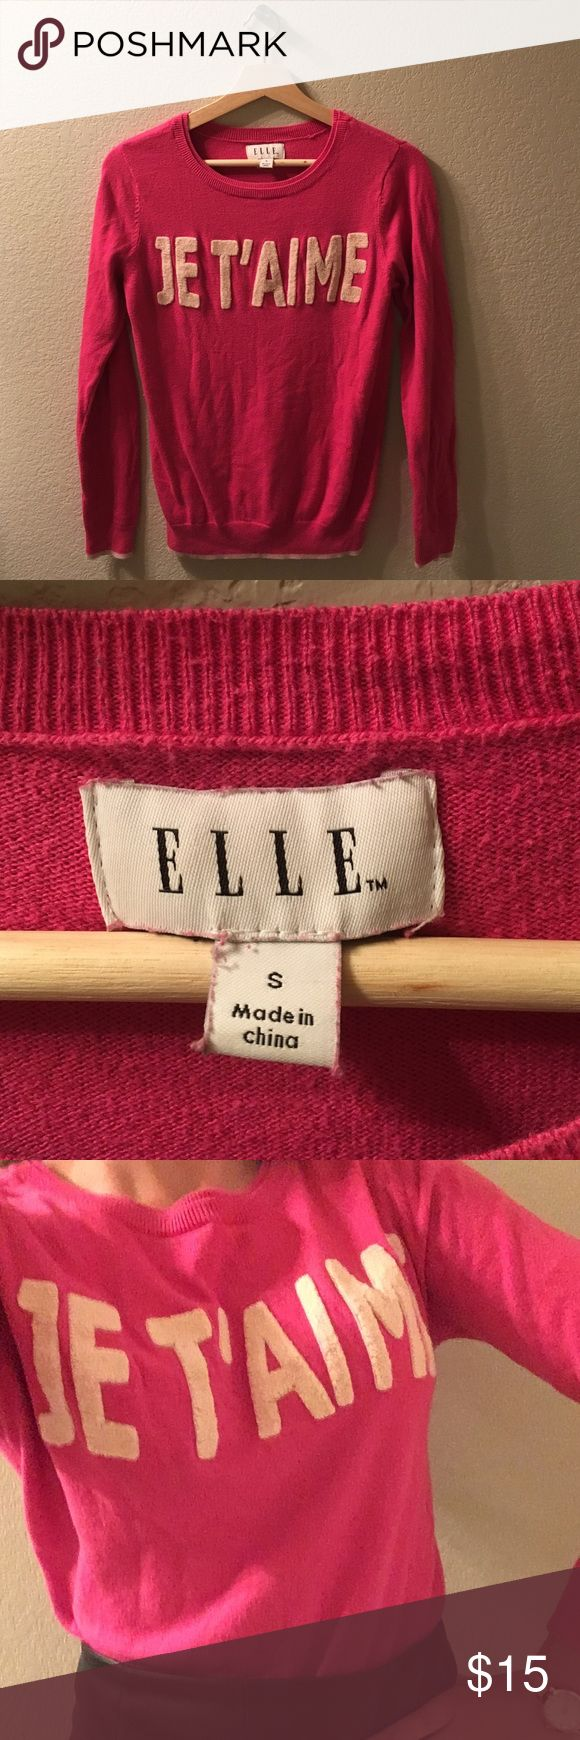 "Hot pink ""JE T'AIME"" sweater. (Jet'aime means I love you in French.) This sweater is especially cute with collared shirts underneath it and with black, high-wasted skirts. Elle  Sweaters Crew & Scoop Necks"